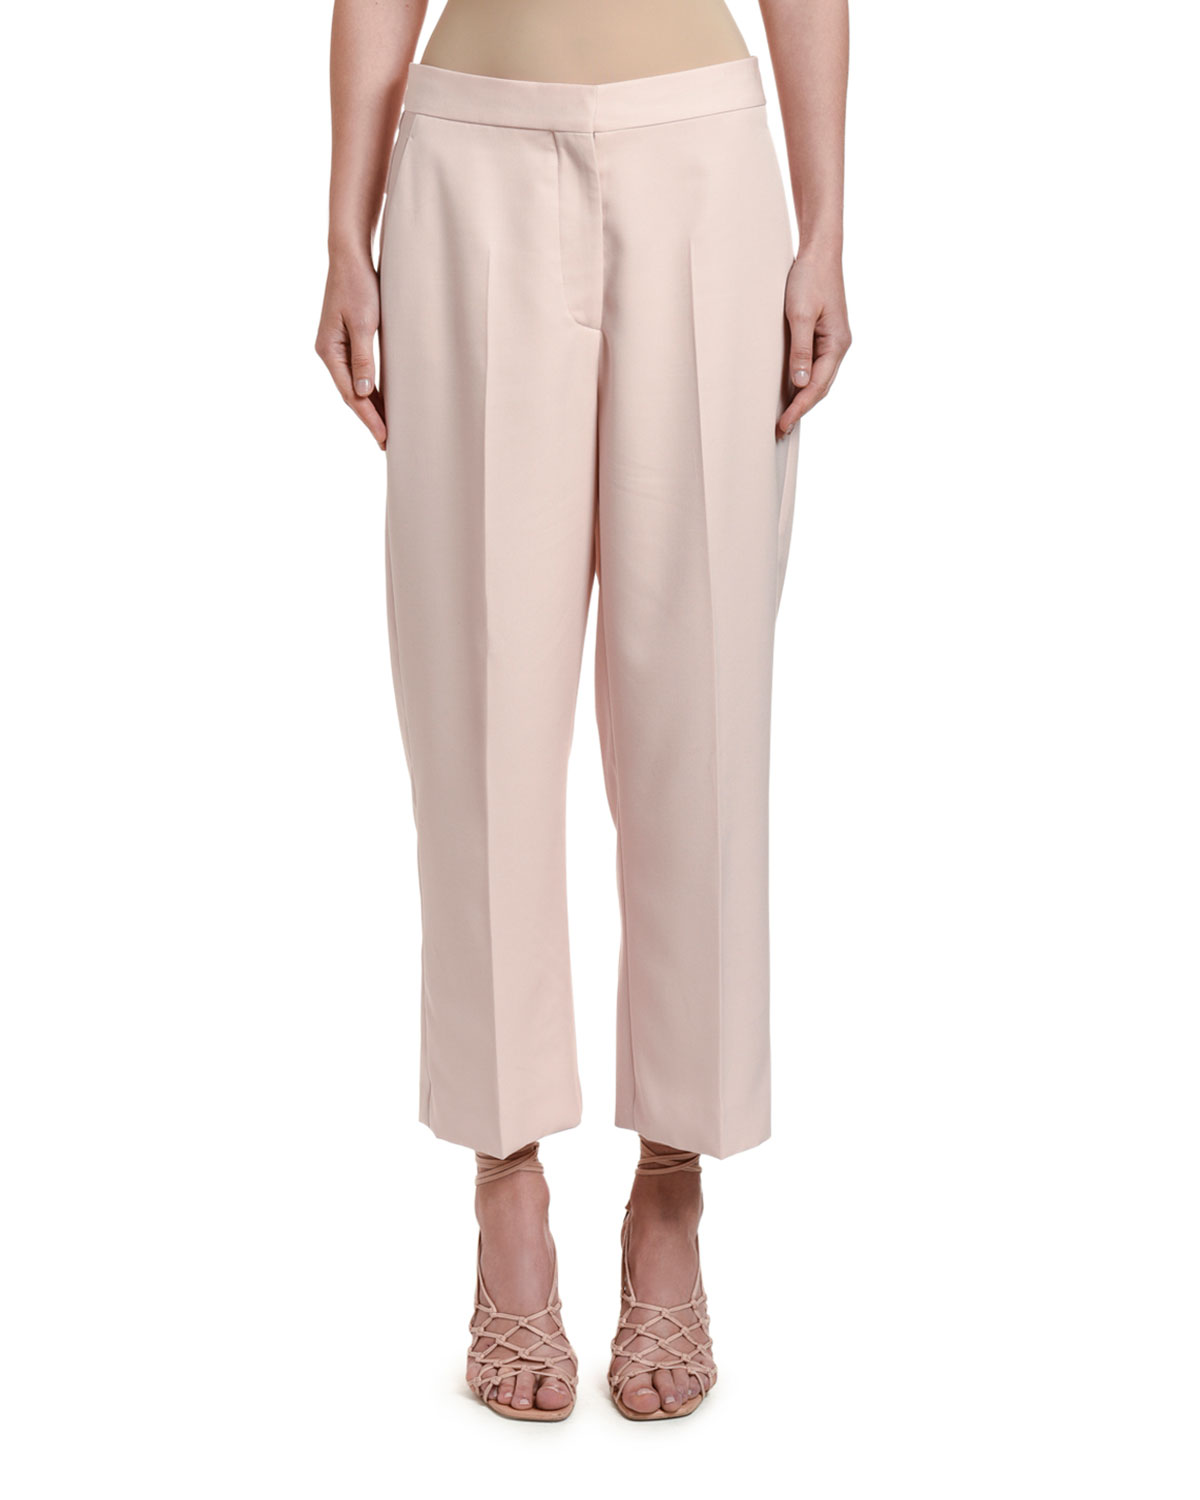 Stella McCartney Tailored Pants